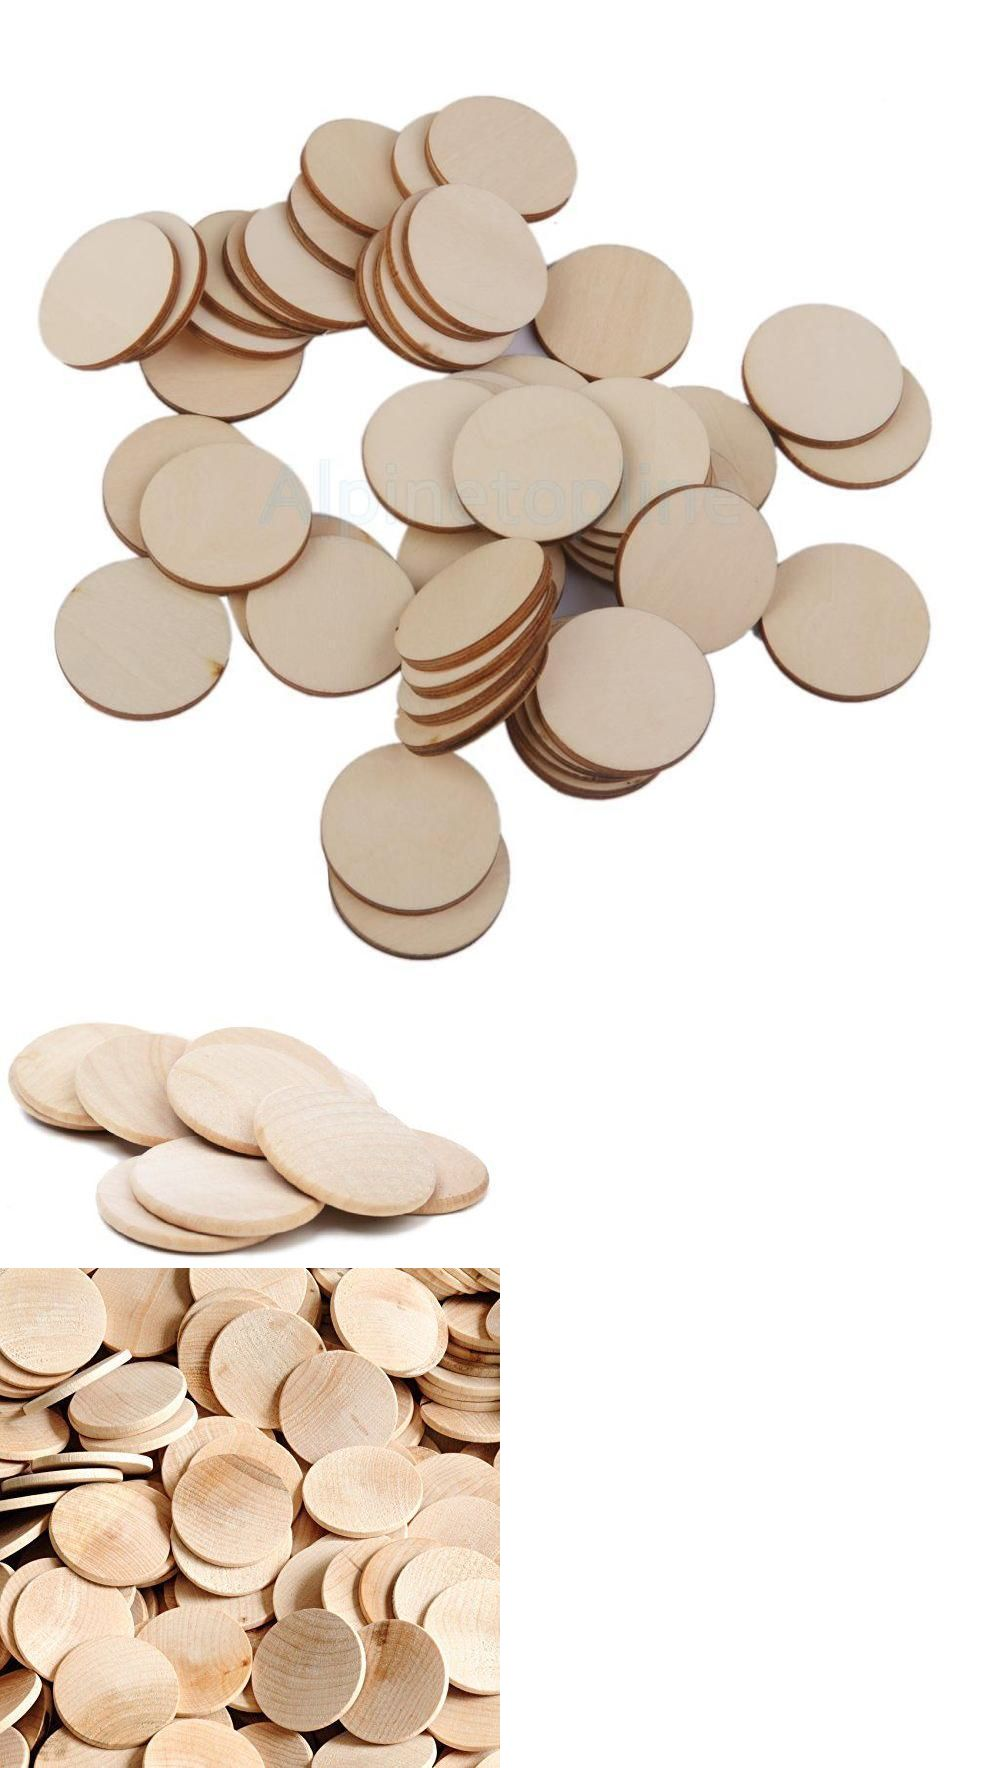 Wooden Craft Circles Round Disc Unfinished Wood Cutouts Ornament Project Arts Wood Cutouts Wooden Crafts Wooden